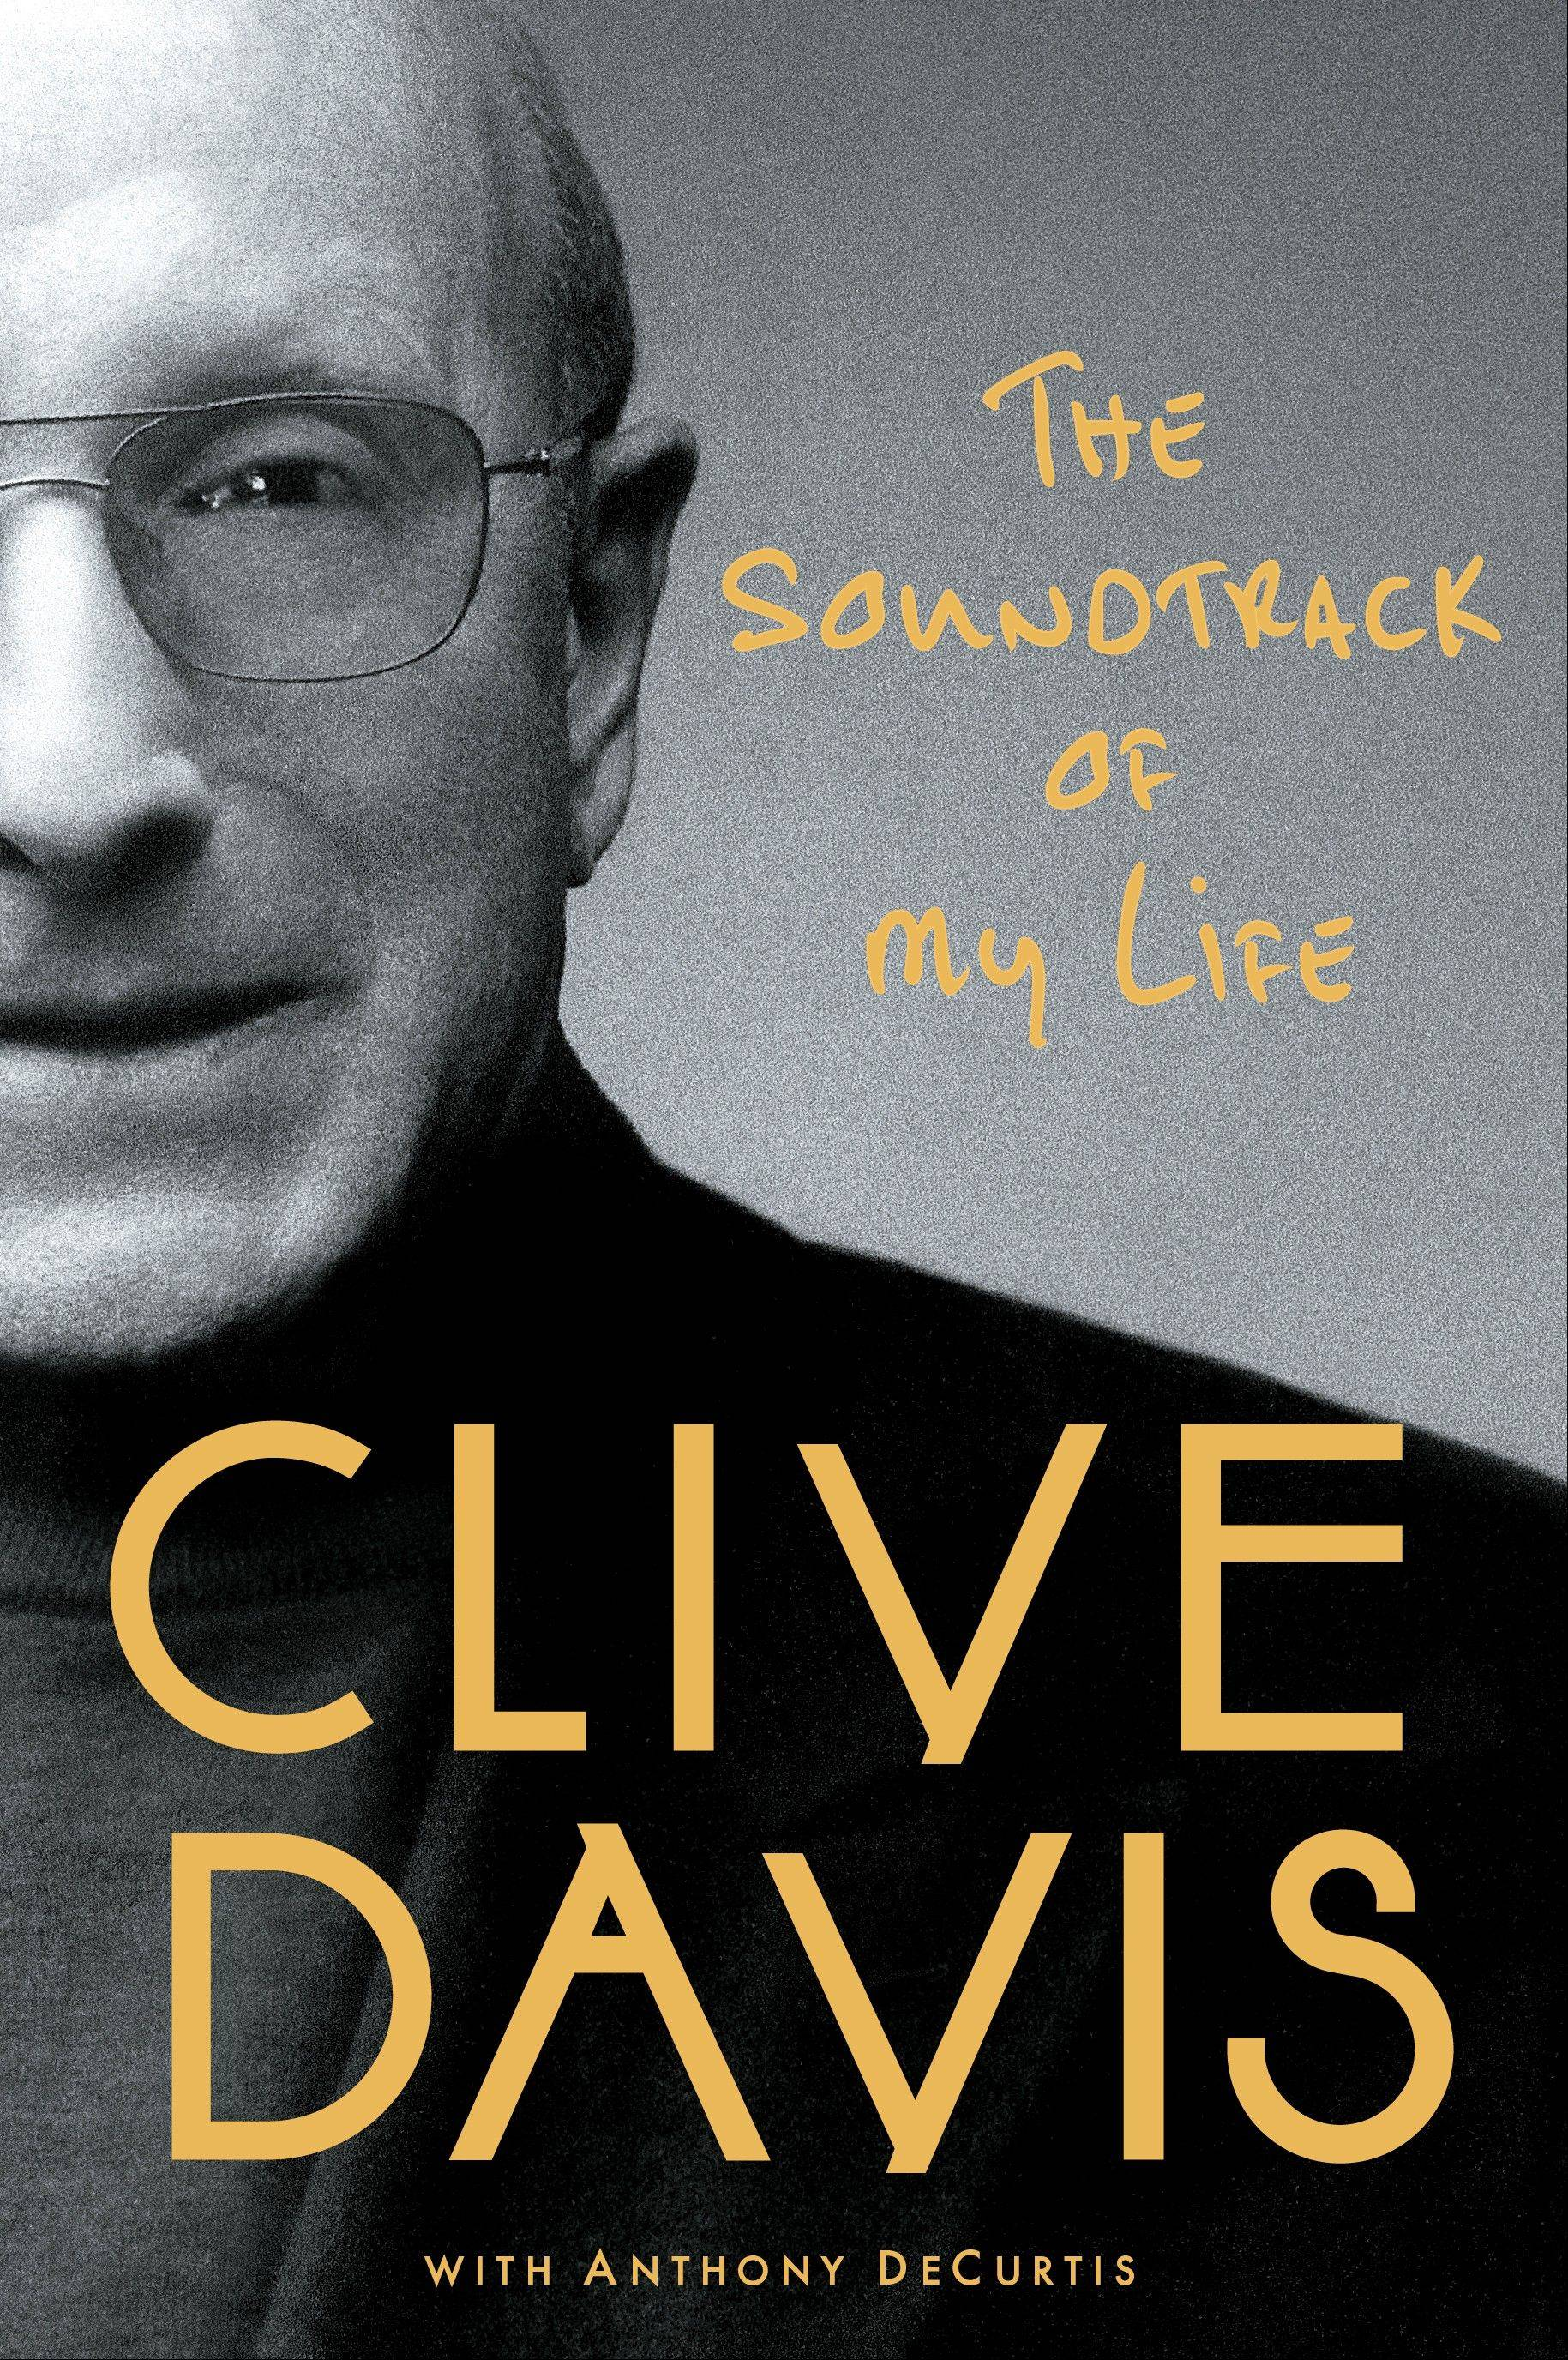 """The Soundtrack of My Life,"" a memoir by Clive Davis with Anthony DeCurtis"